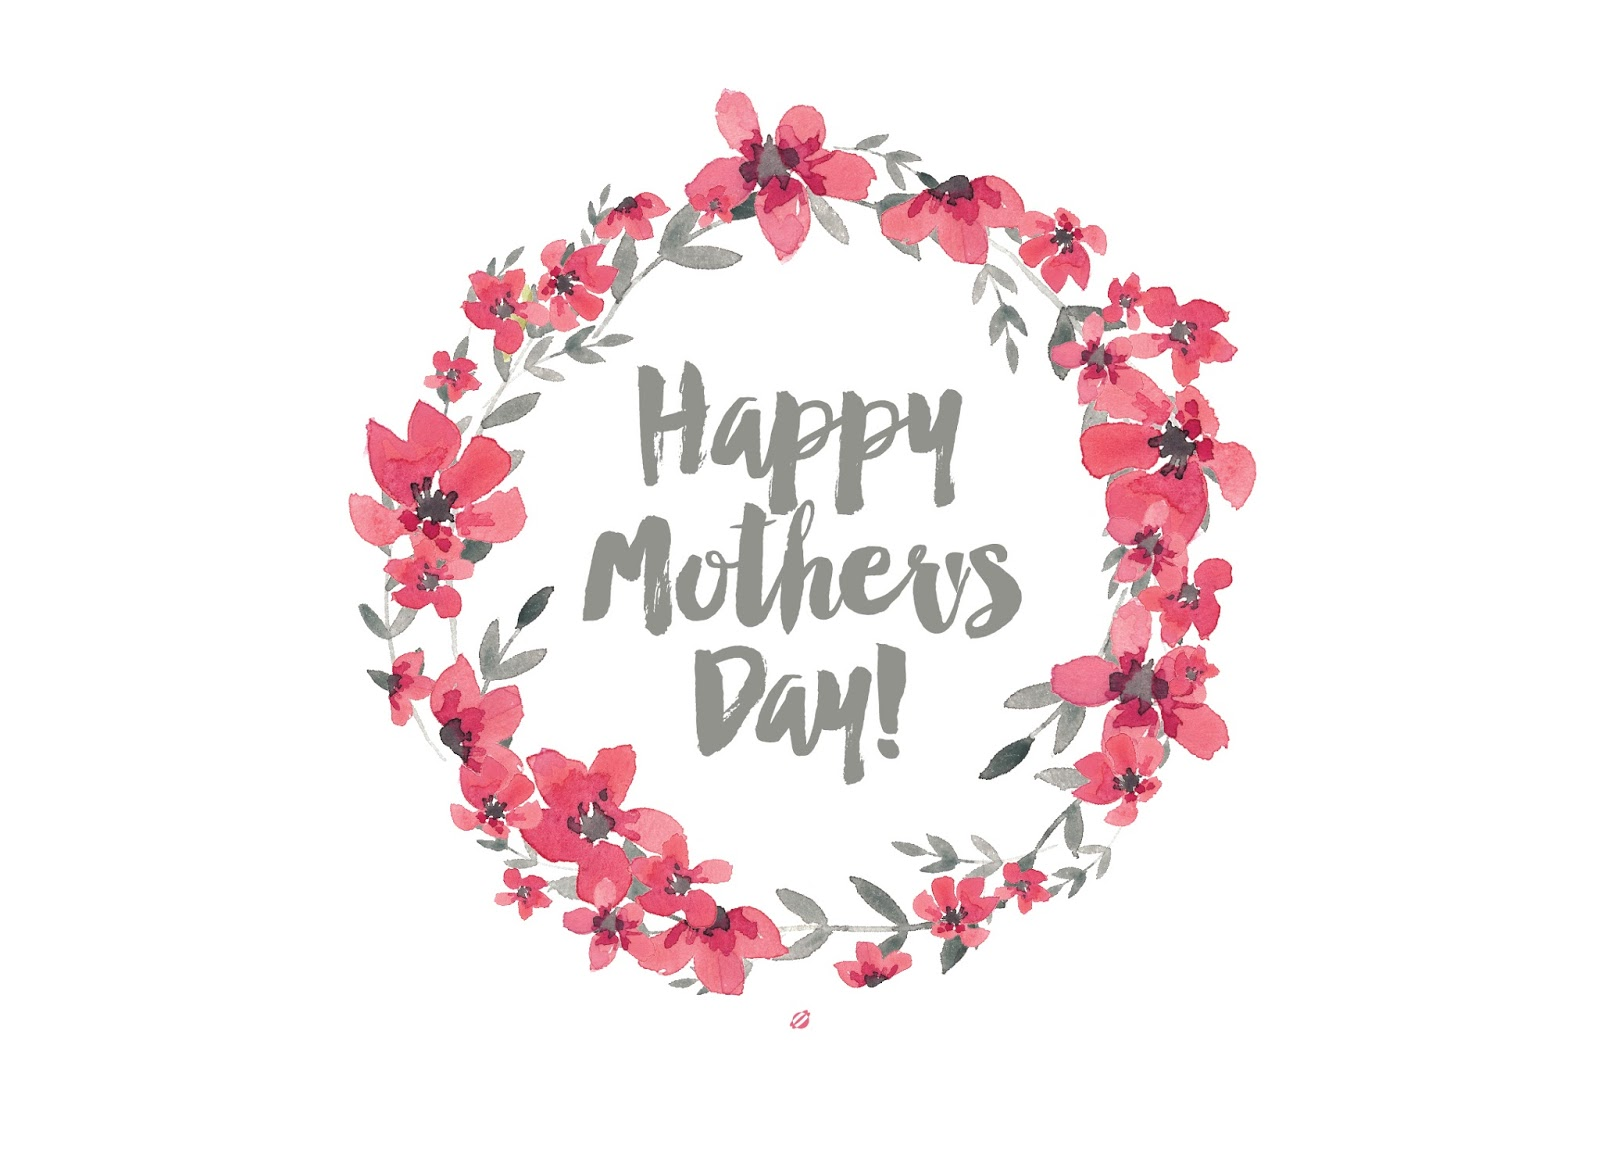 LostBumblebee: Happy Mother's Day 2016